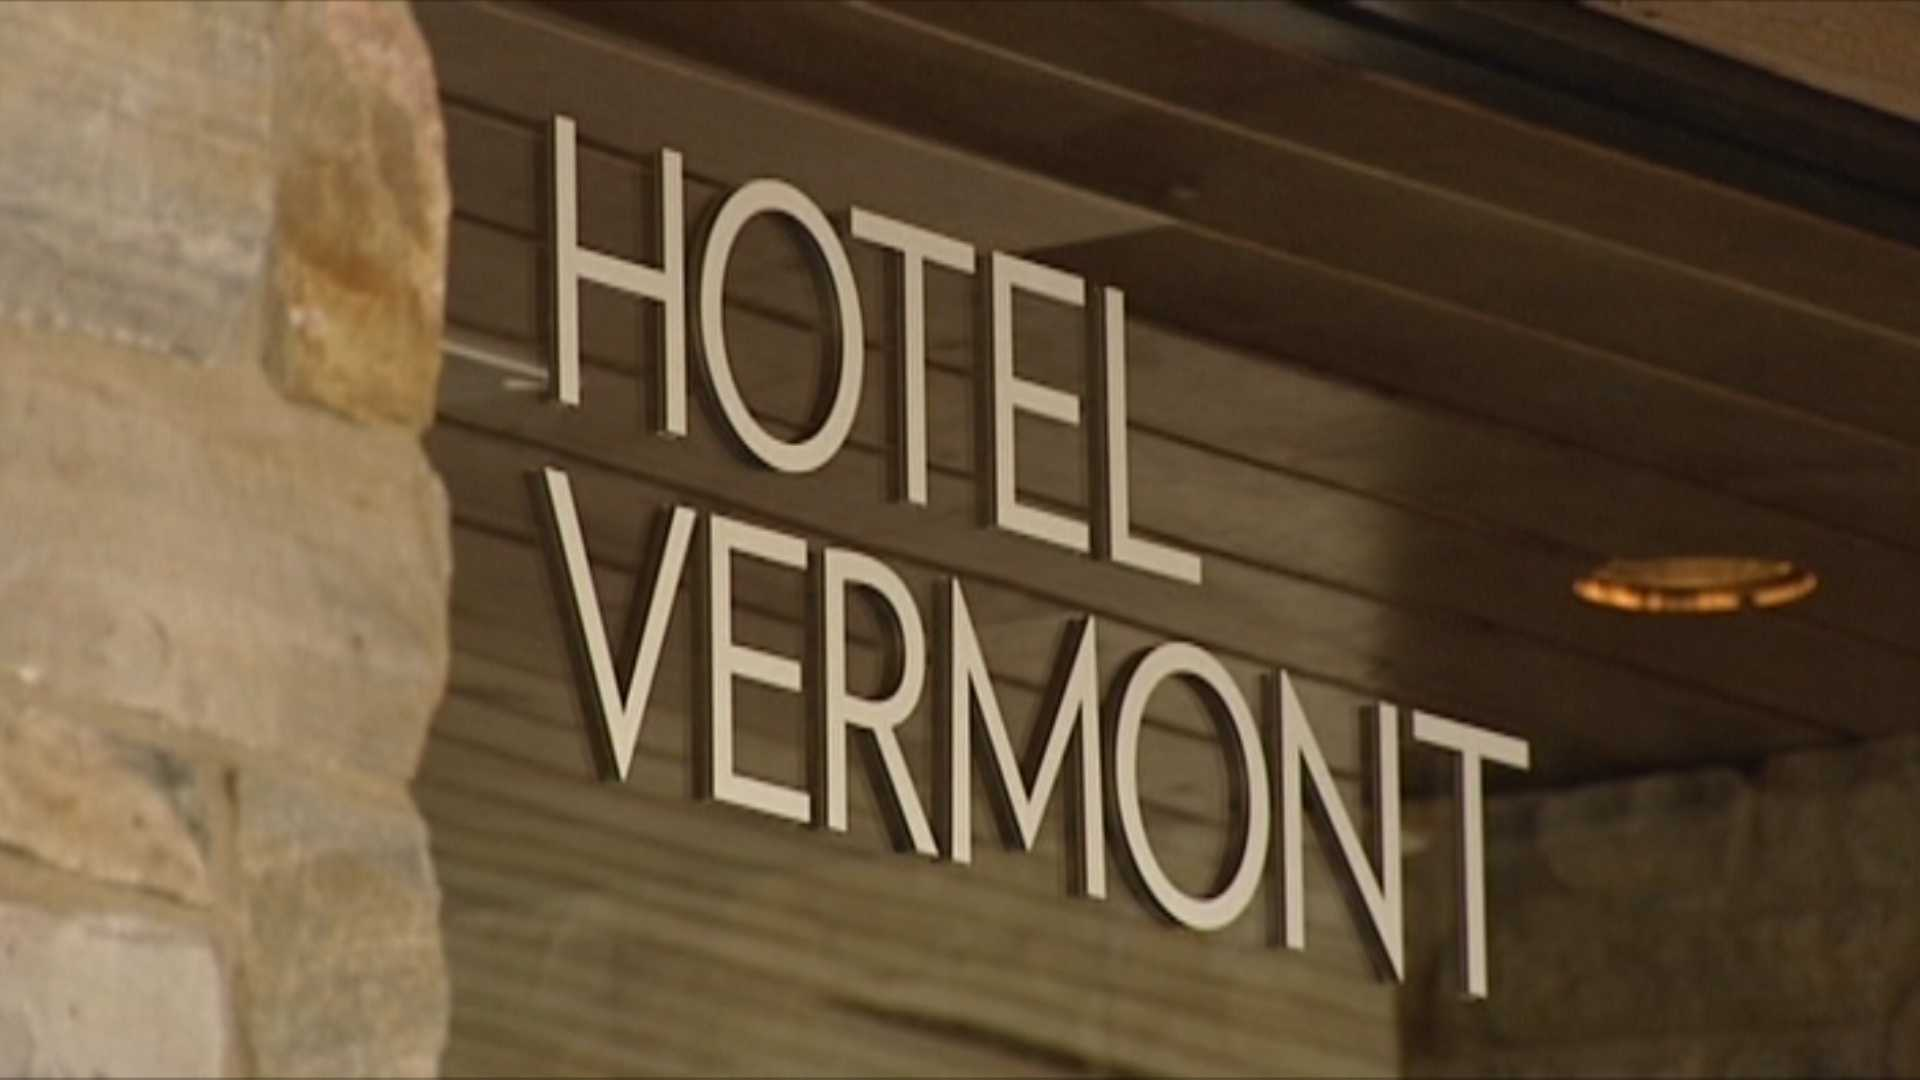 10-15 Hotel Vermont honored with 'Hot' award - img